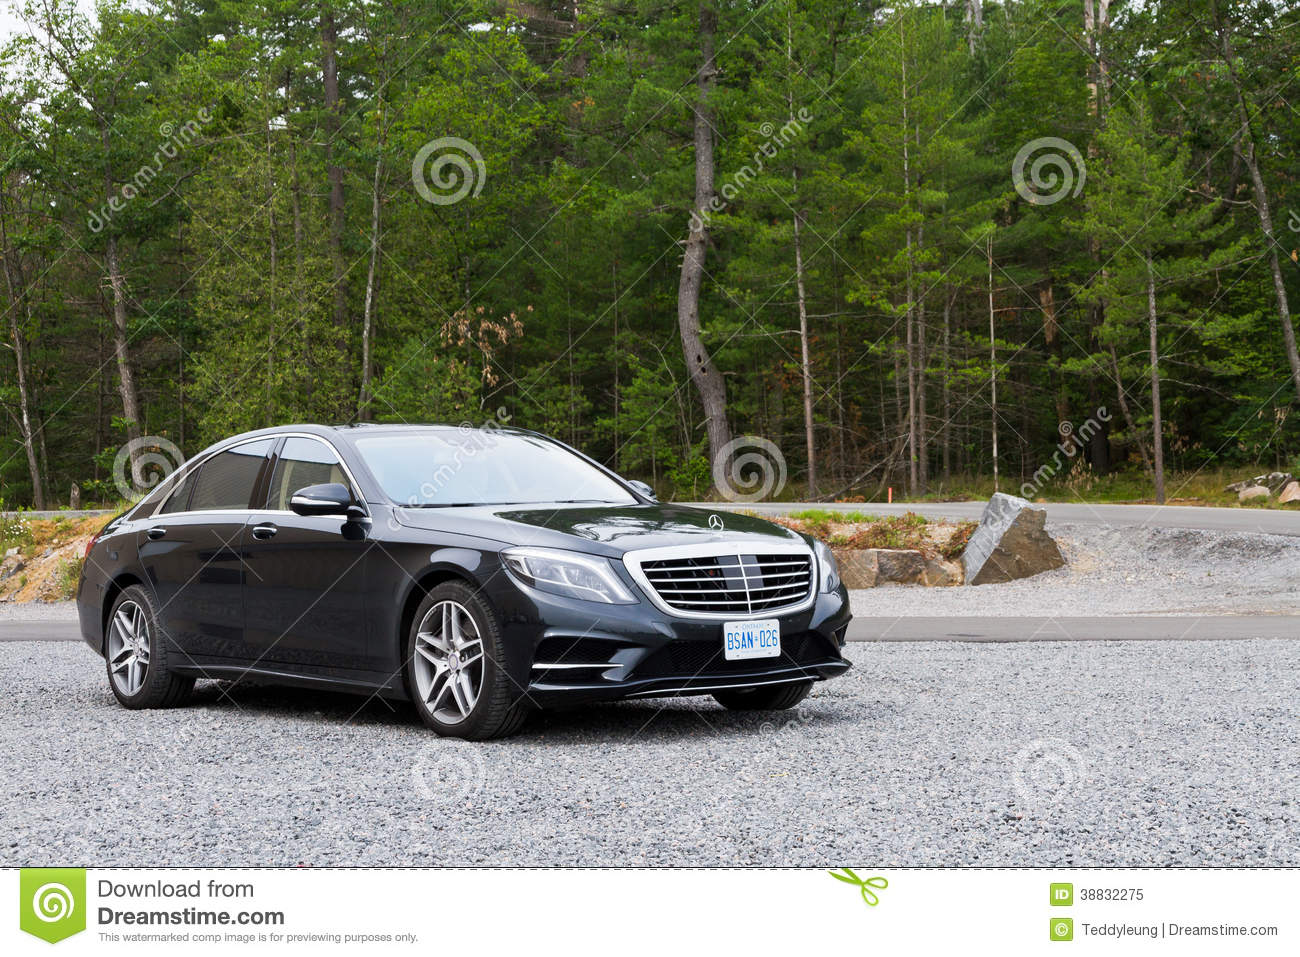 Mercedes-Benz 2013 classe de la s Top Model Sedan